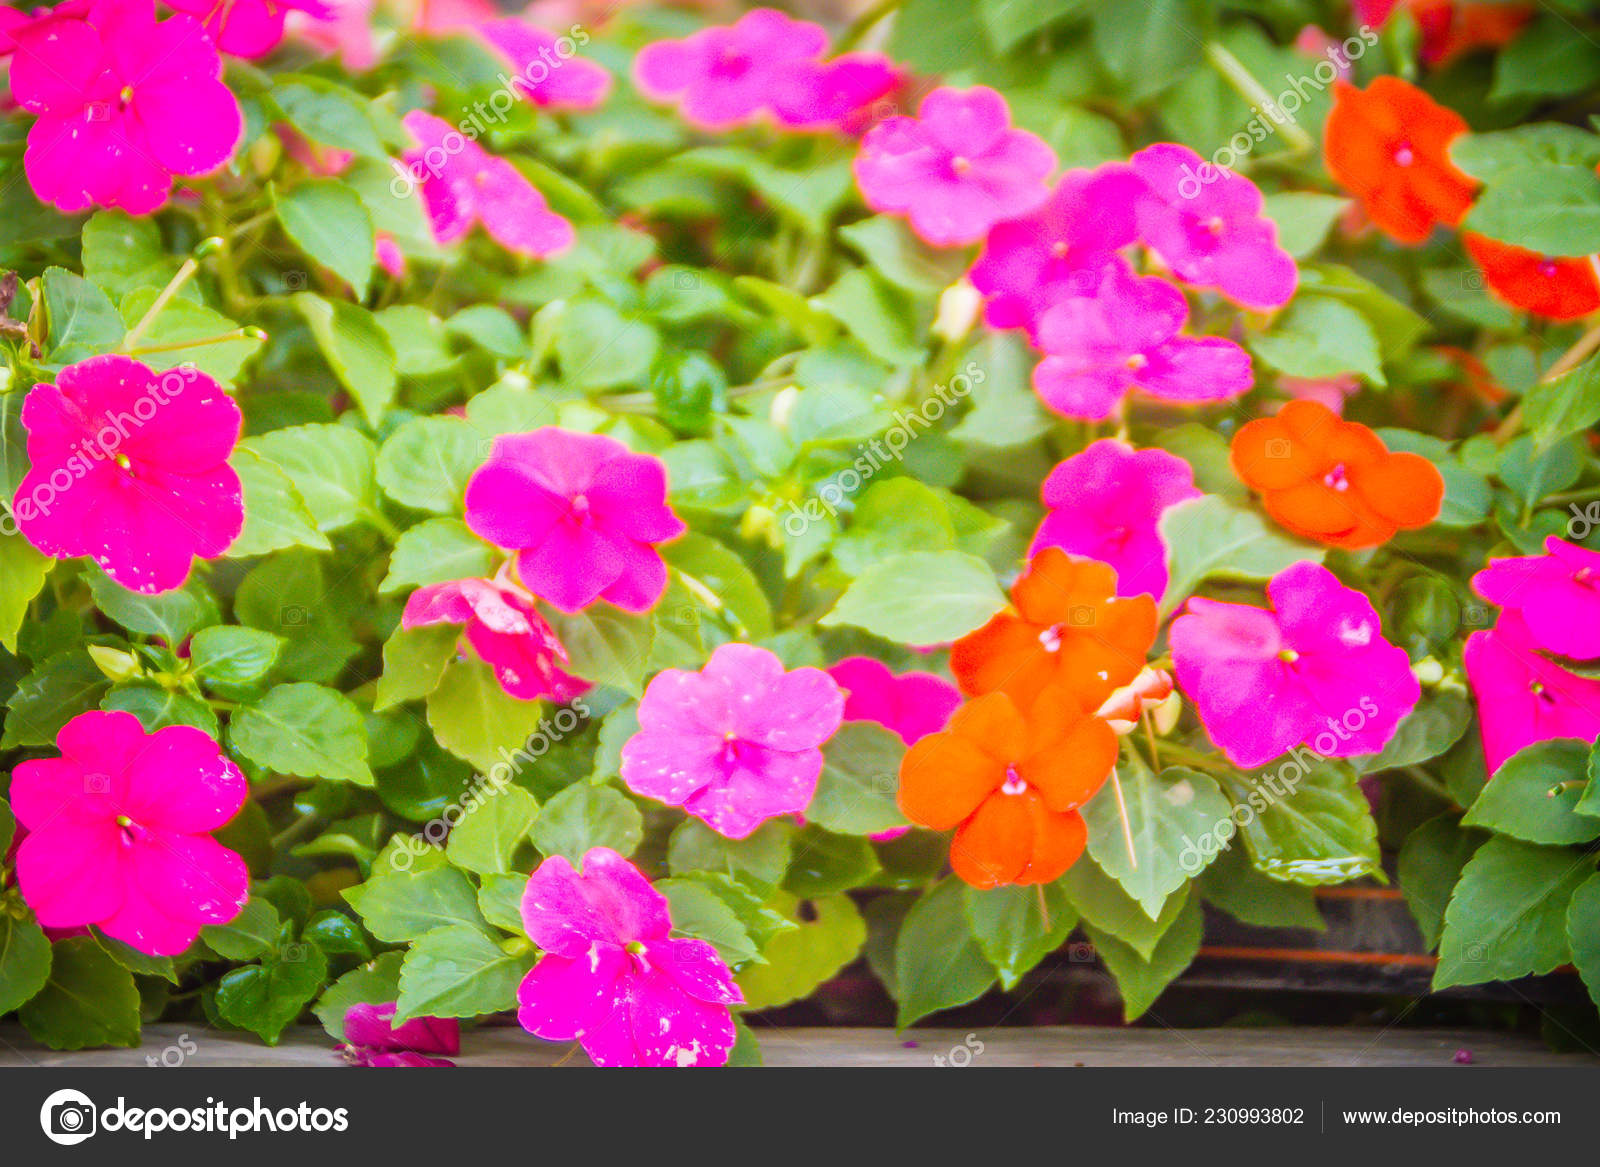 Close Beautiful Pink Petunia Flowers Green Leaves Background Copy Space Stock Photo Image By C Kampwit 230993802